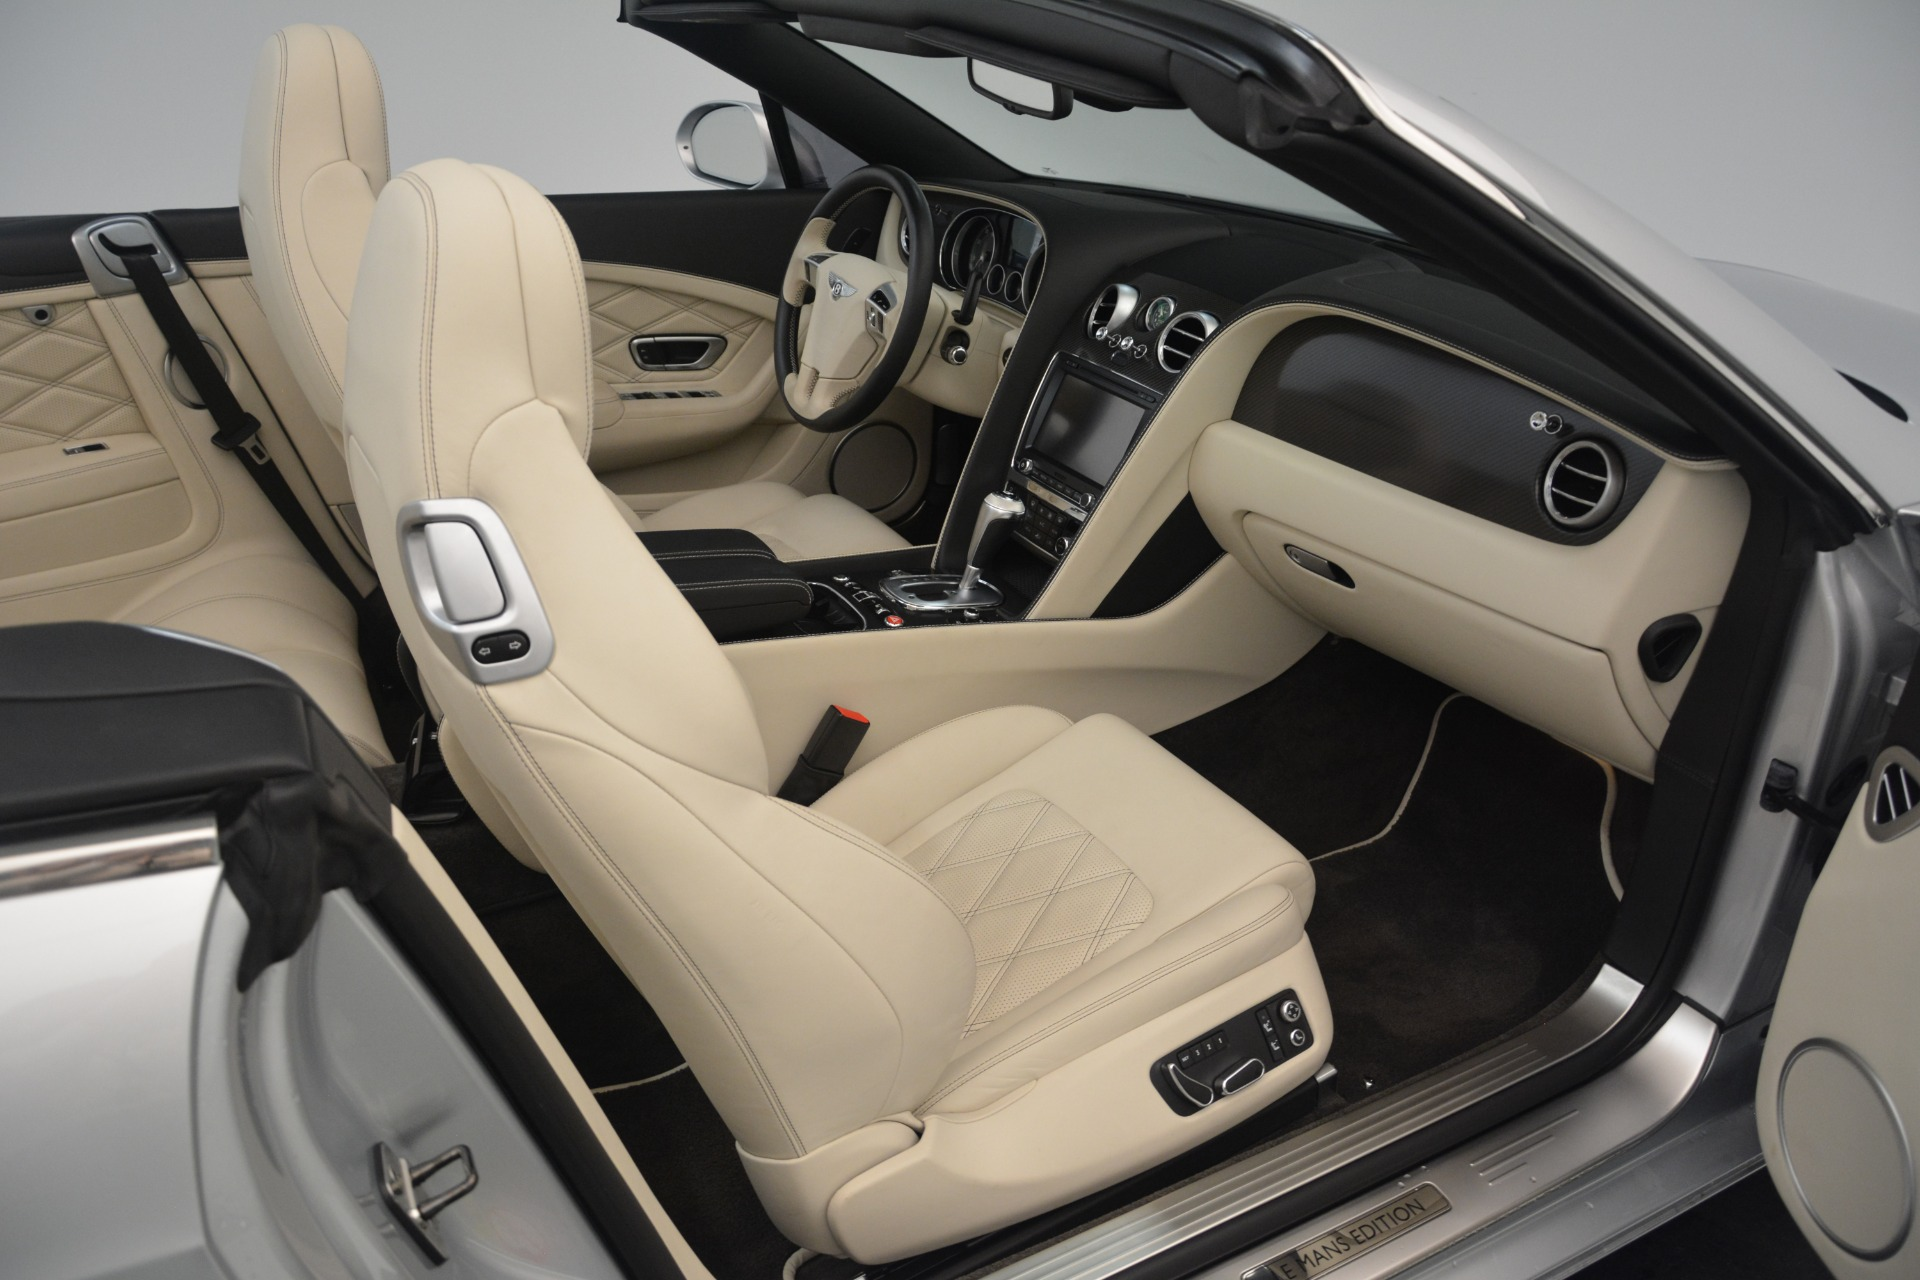 Used 2013 Bentley Continental GT W12 Le Mans Edition For Sale In Greenwich, CT 2519_p29